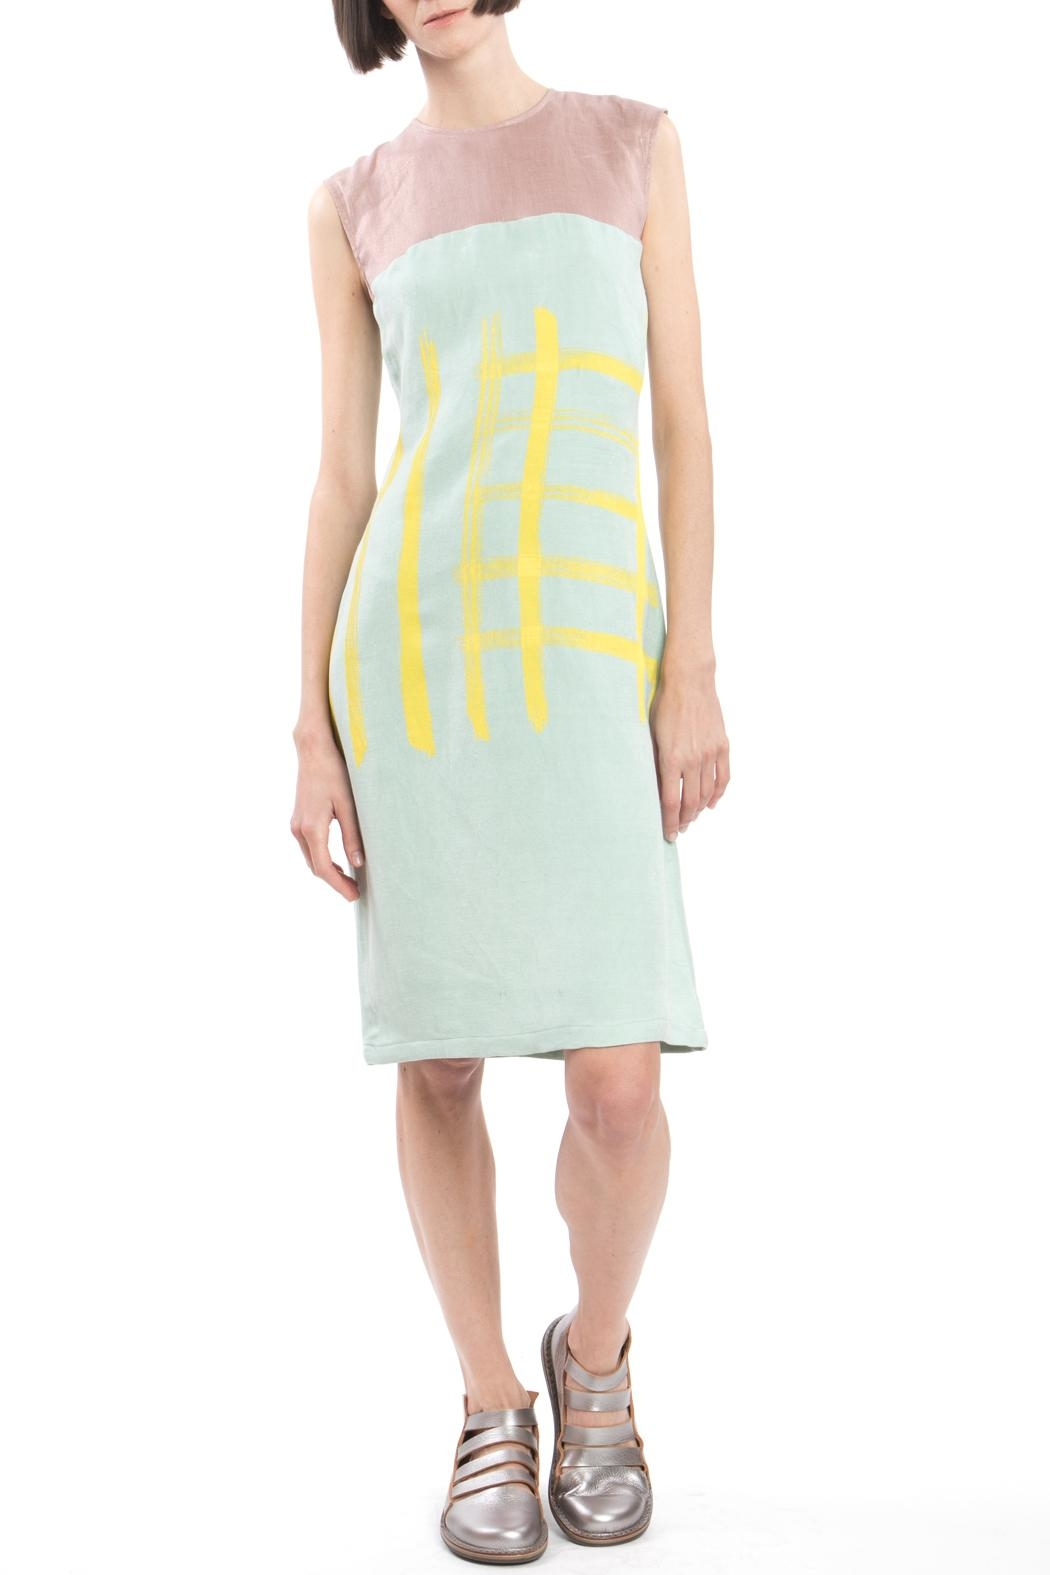 Clara Kaesdorf Shift Yellow Print Dress - Main Image